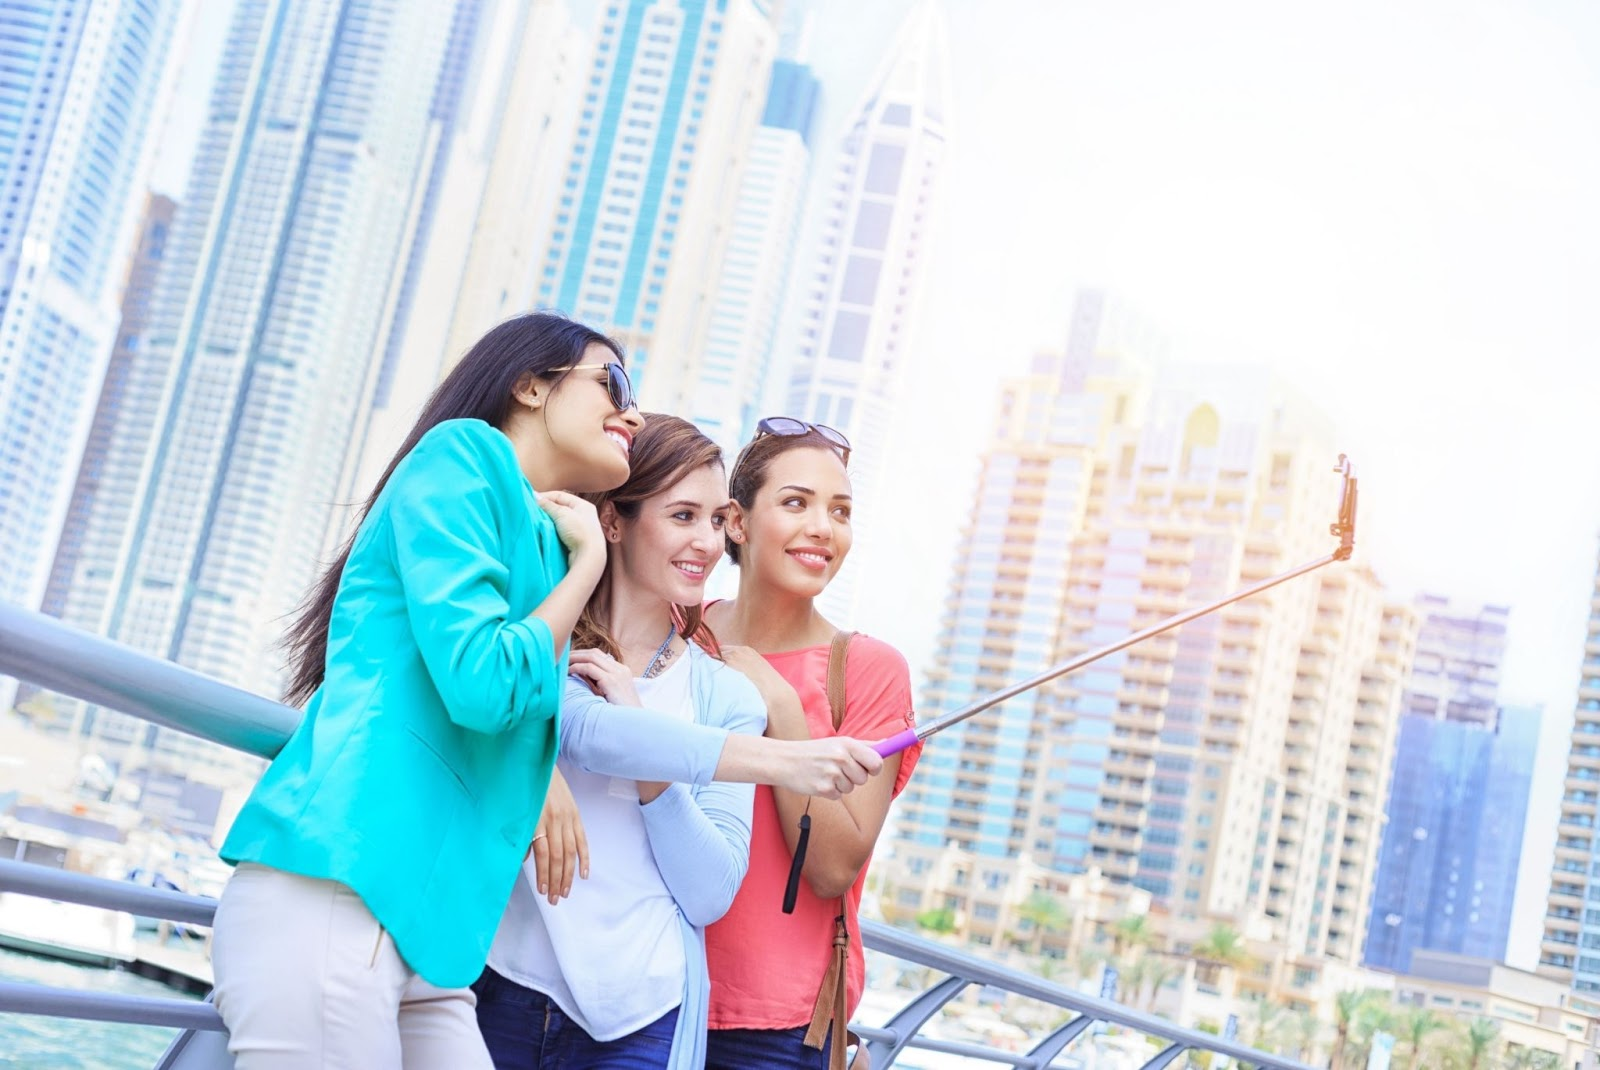 Over 50% of Dubai is aged 25-49